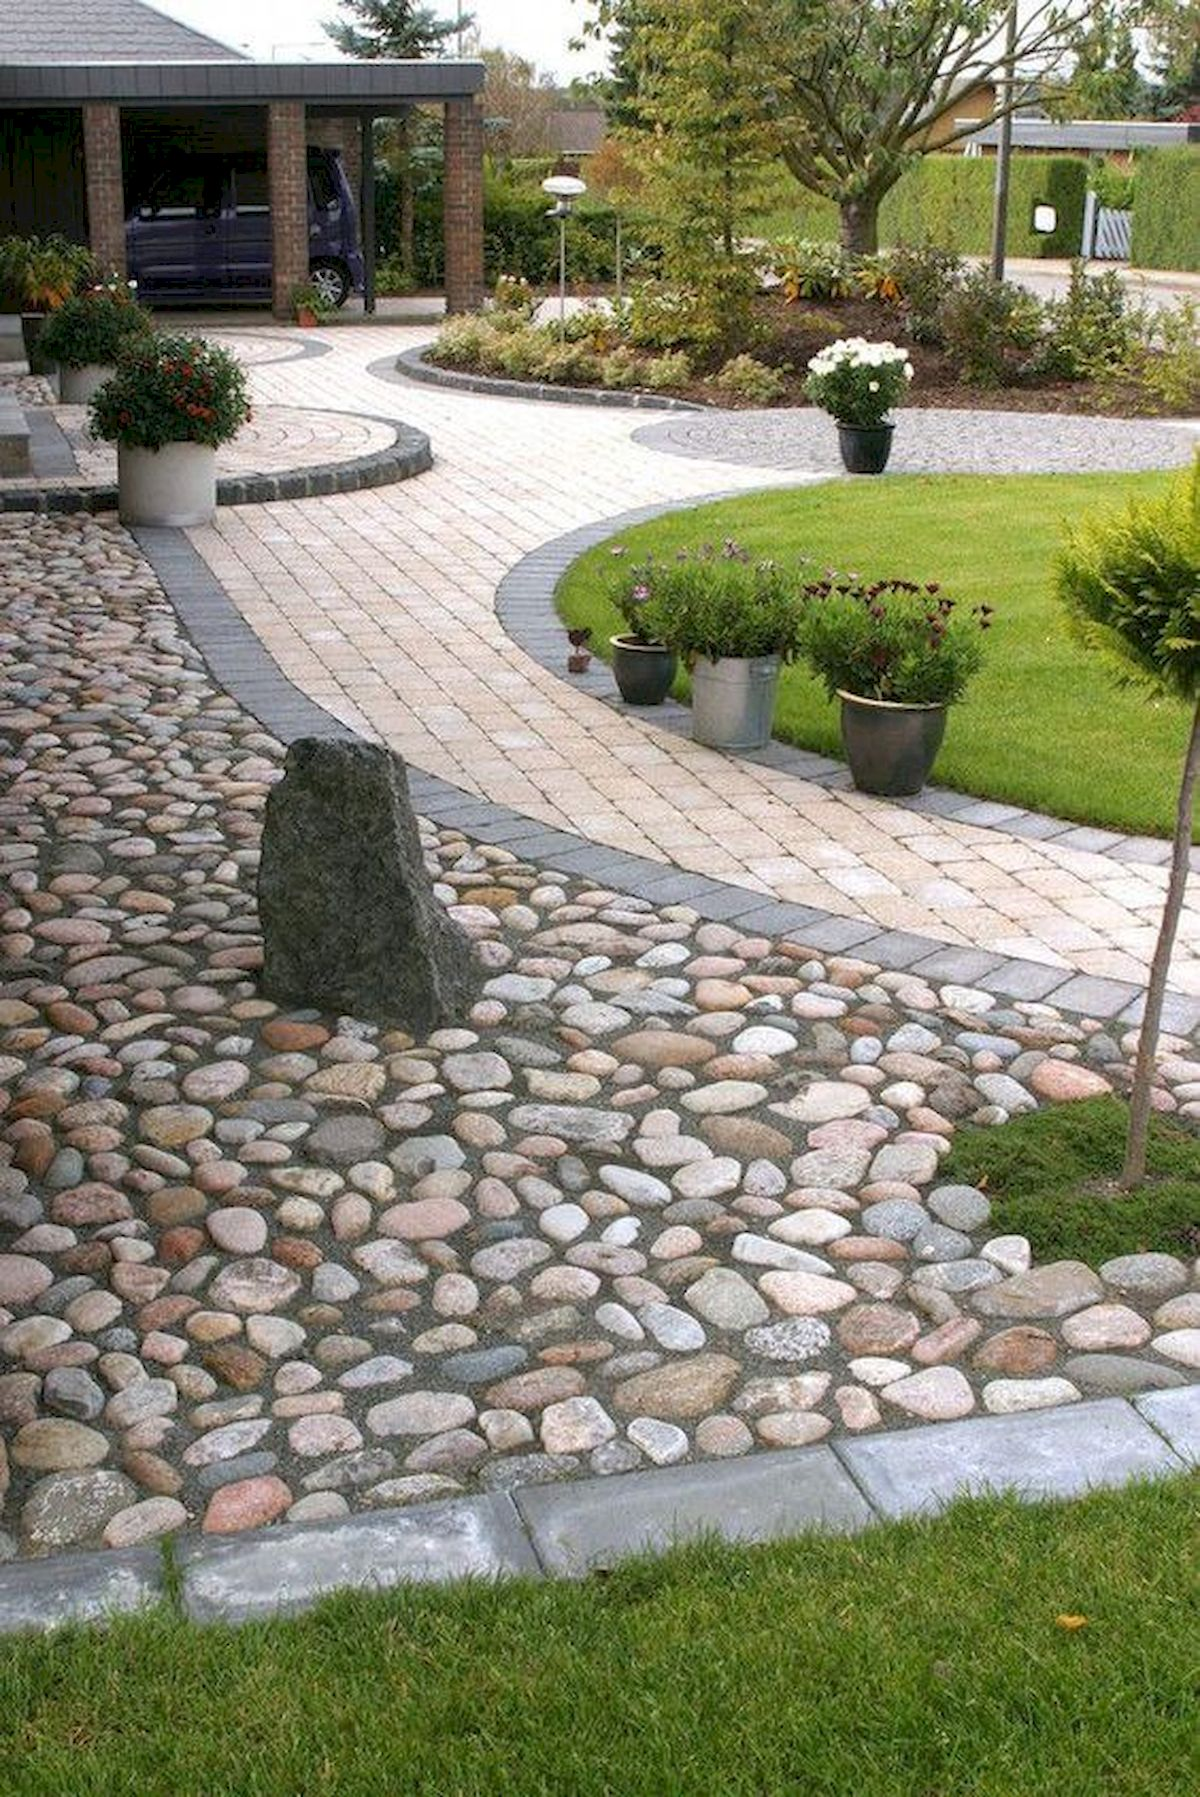 71 Beautiful Gravel Garden Design Ideas For Side Yard And ... on Patio And Gravel Garden Ideas id=99809